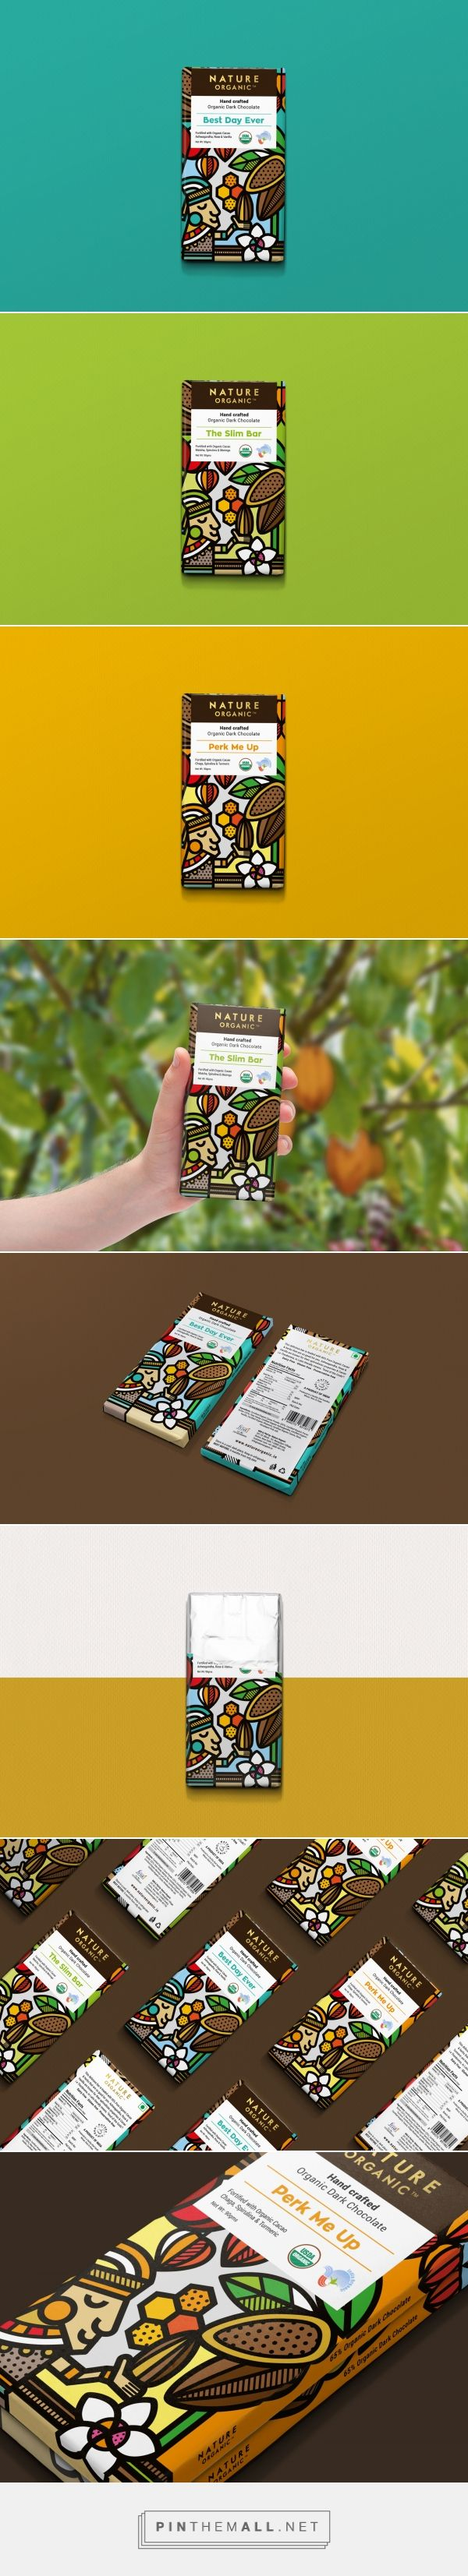 Nature Organic Chocolates packaging design by Smirap Designs (Mike Karolos) - http://www.packagingoftheworld.com/2017/12/nature-organic-chocolates.html